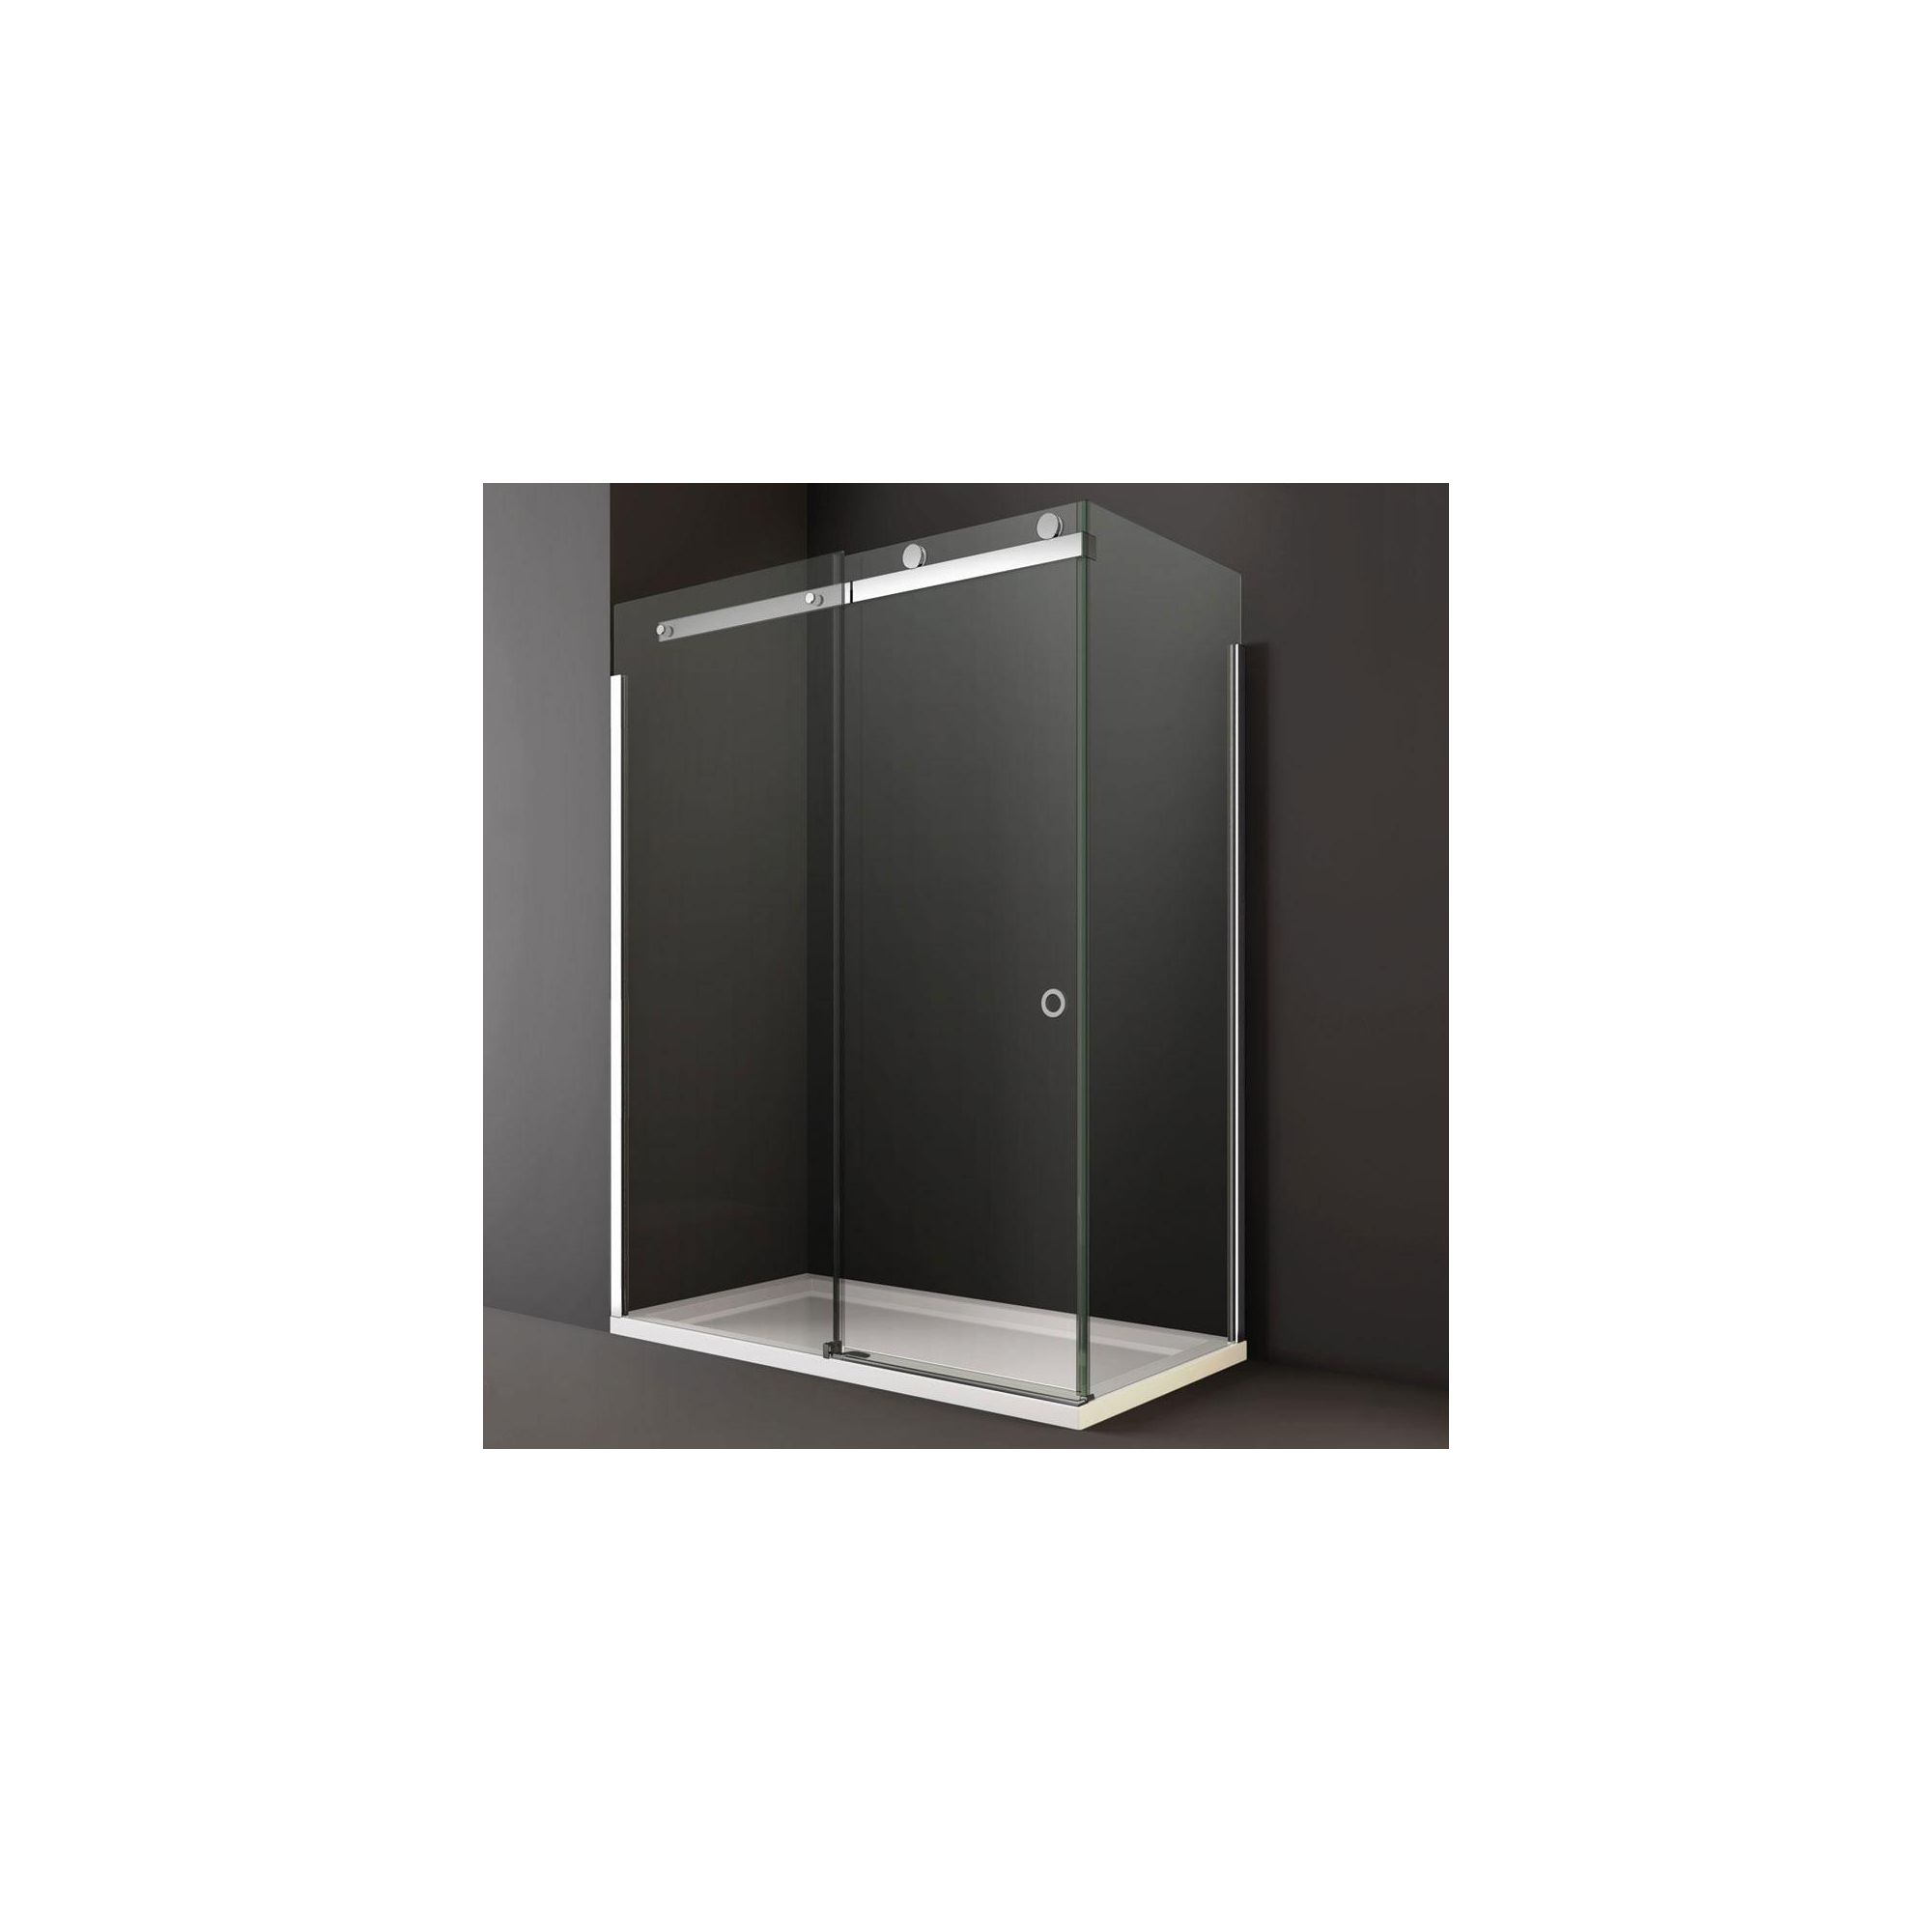 Merlyn Series 10 Sliding Shower Door, 1100mm Wide, 10mm Clear Glass, Left Handed at Tescos Direct